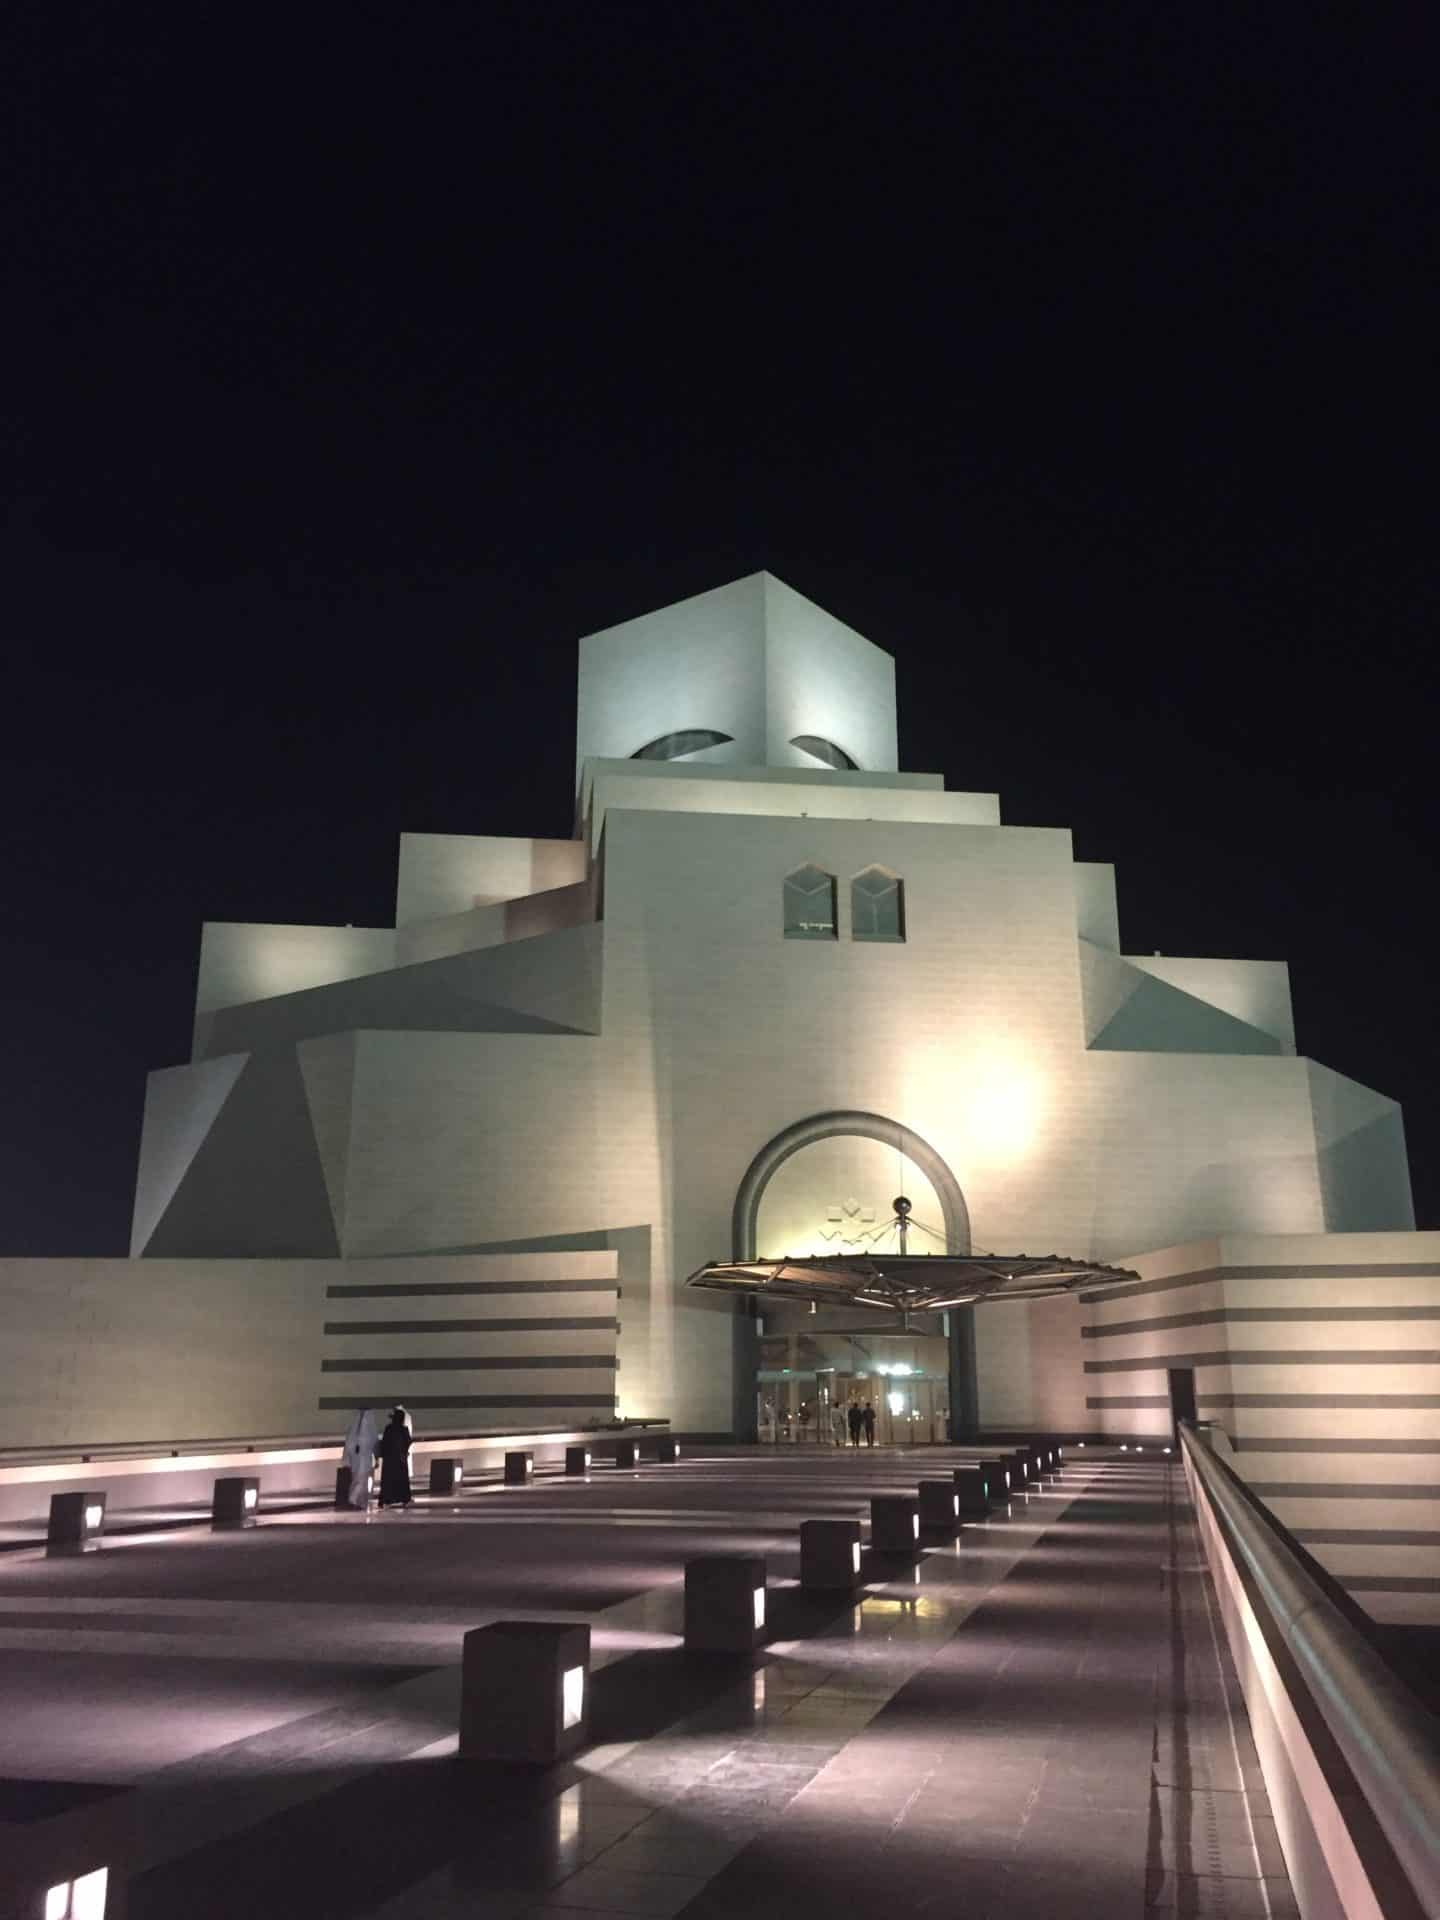 Things to do in Doha at night